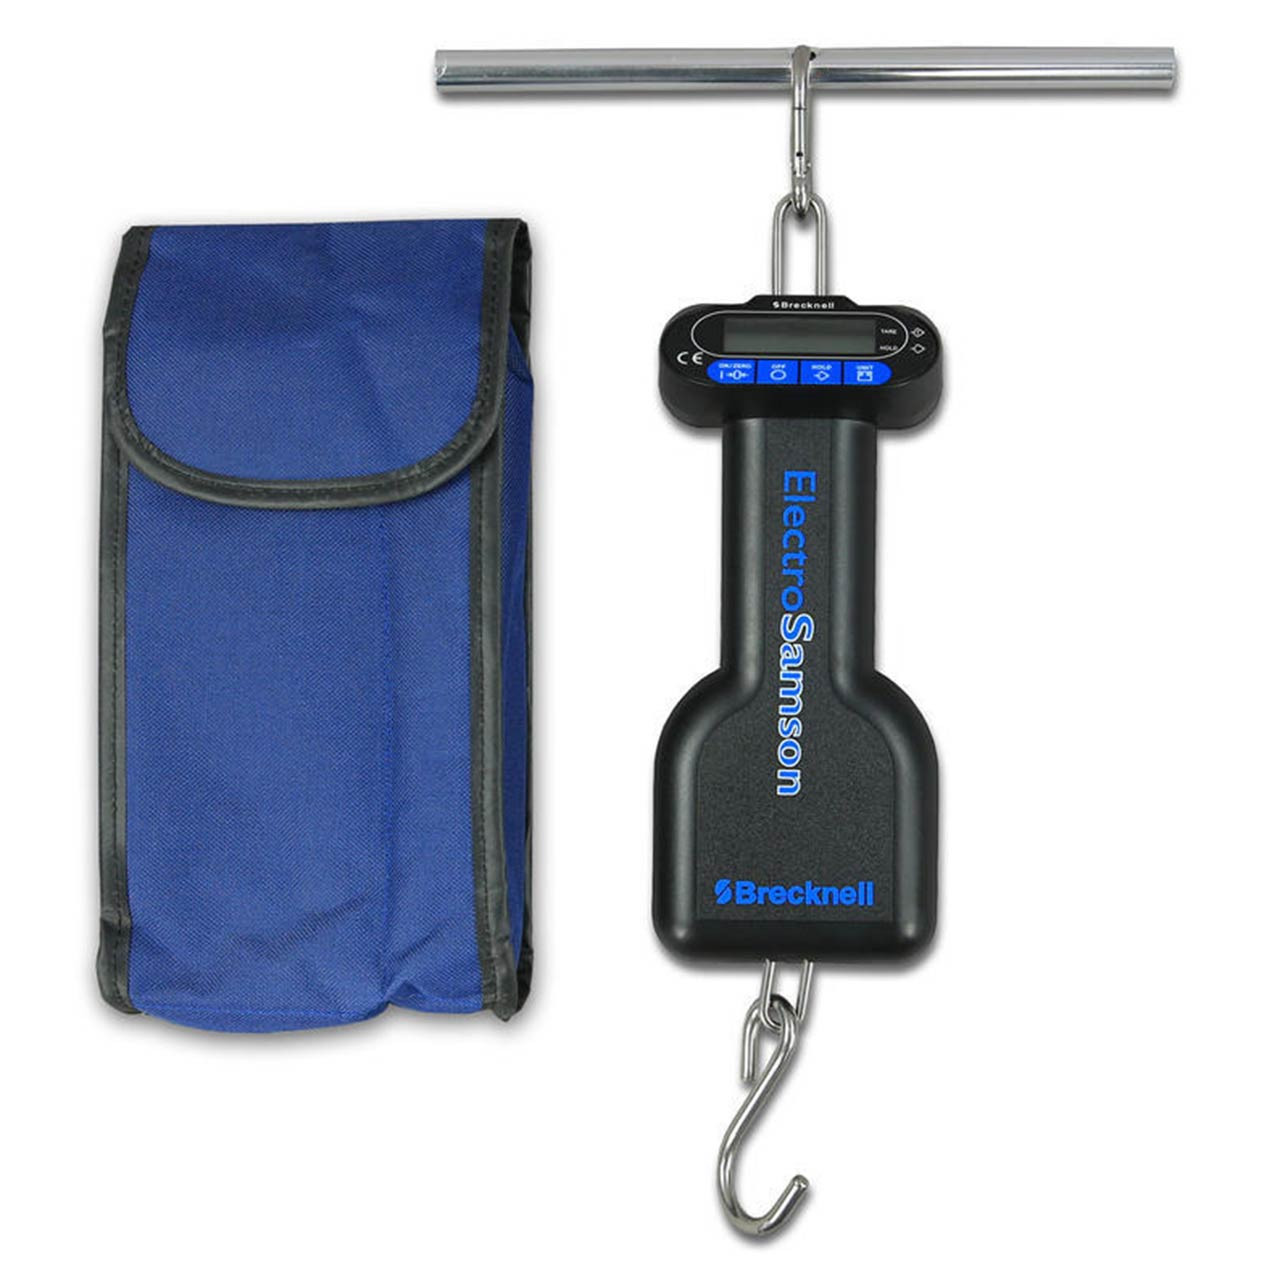 Case and Electronic Hand-Held Hanging Scale